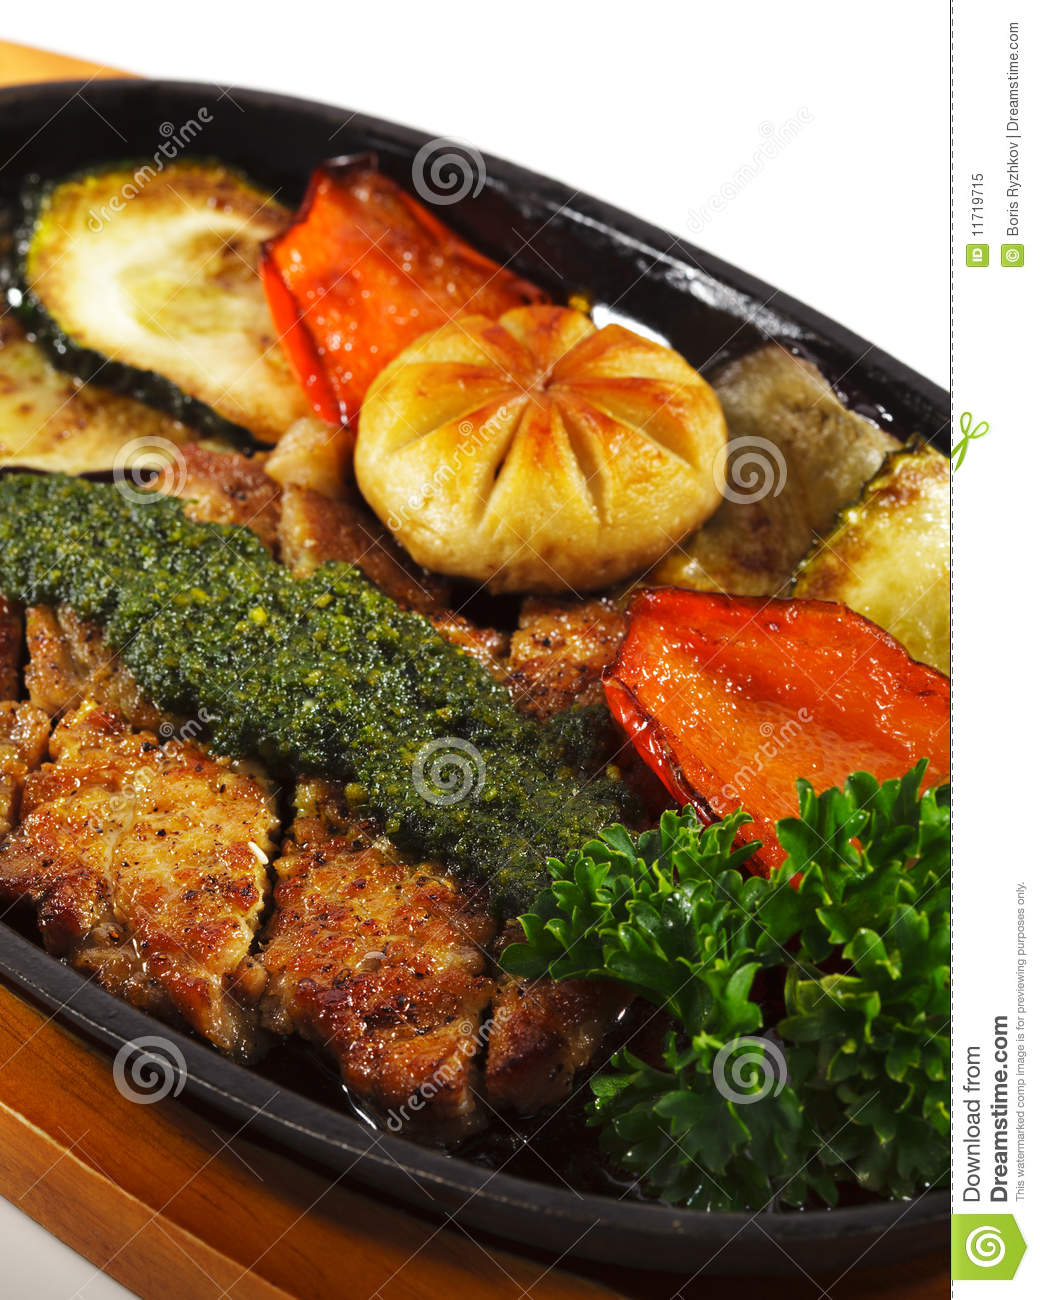 Japanese cuisine - grilled pork with roasted vegetables and mushrooms